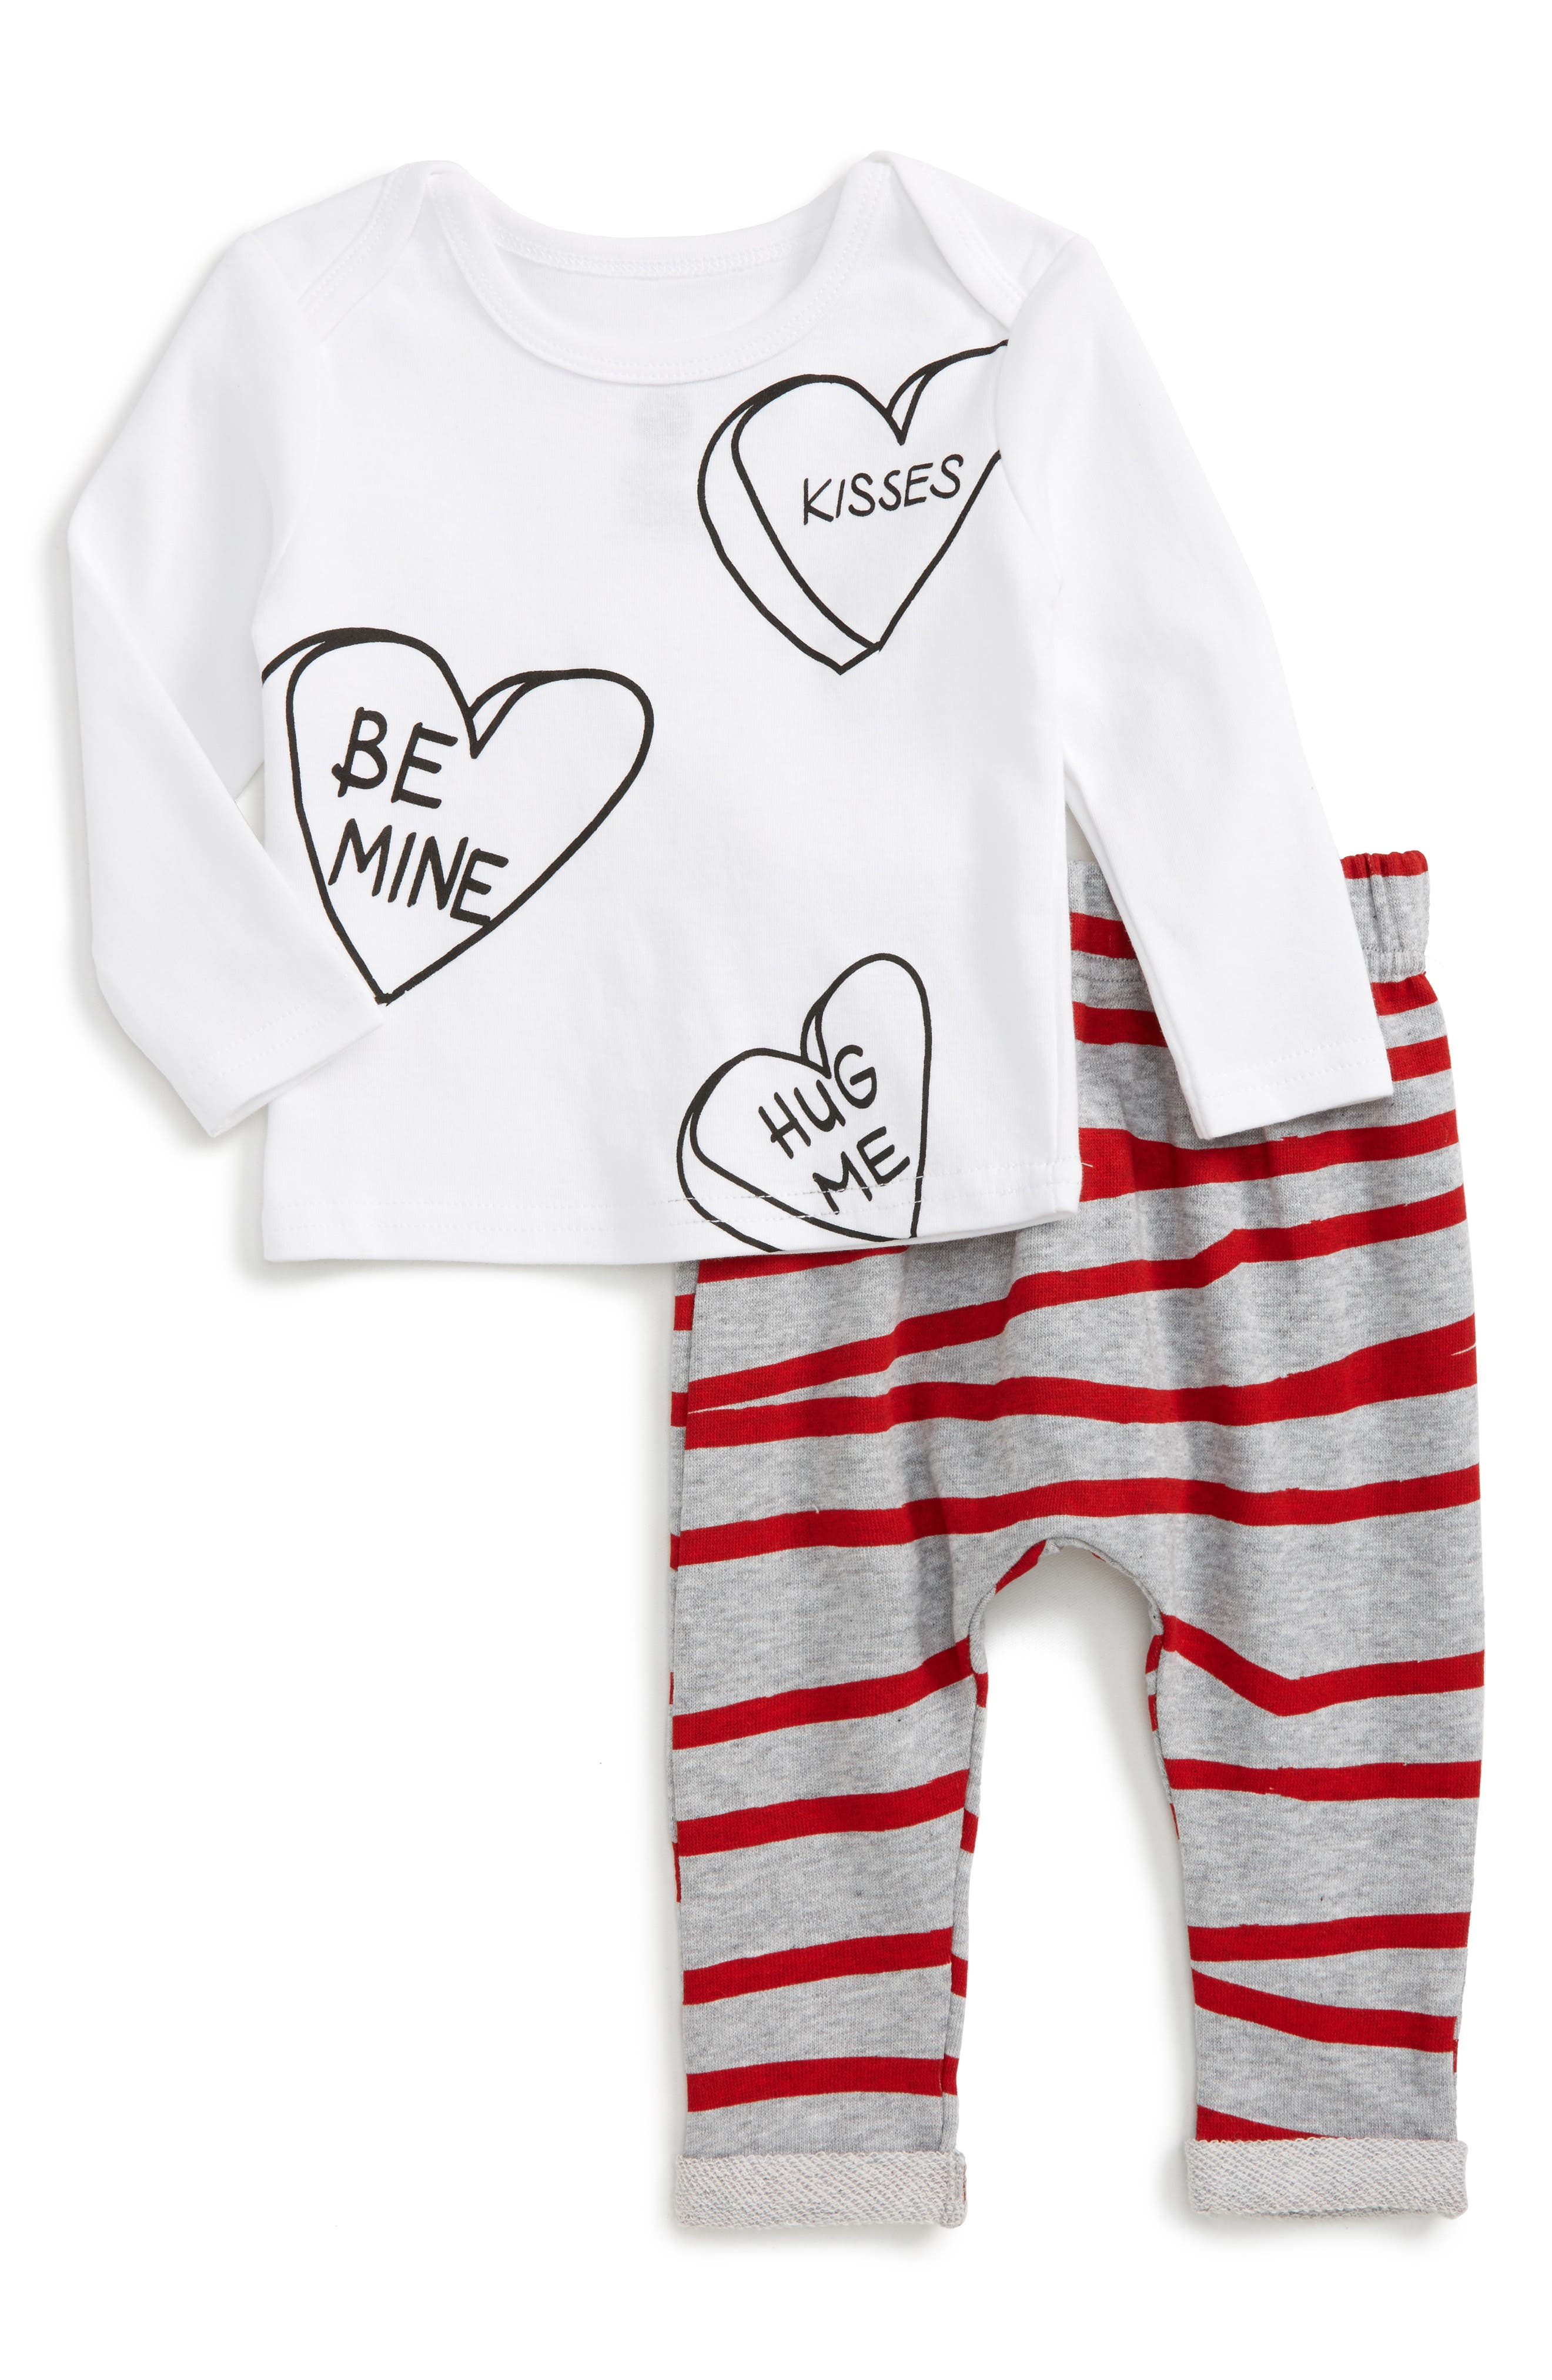 Main Image - SOOKIbaby Be Mine Tee & Stripe Sweatpants Set (Baby Girls)